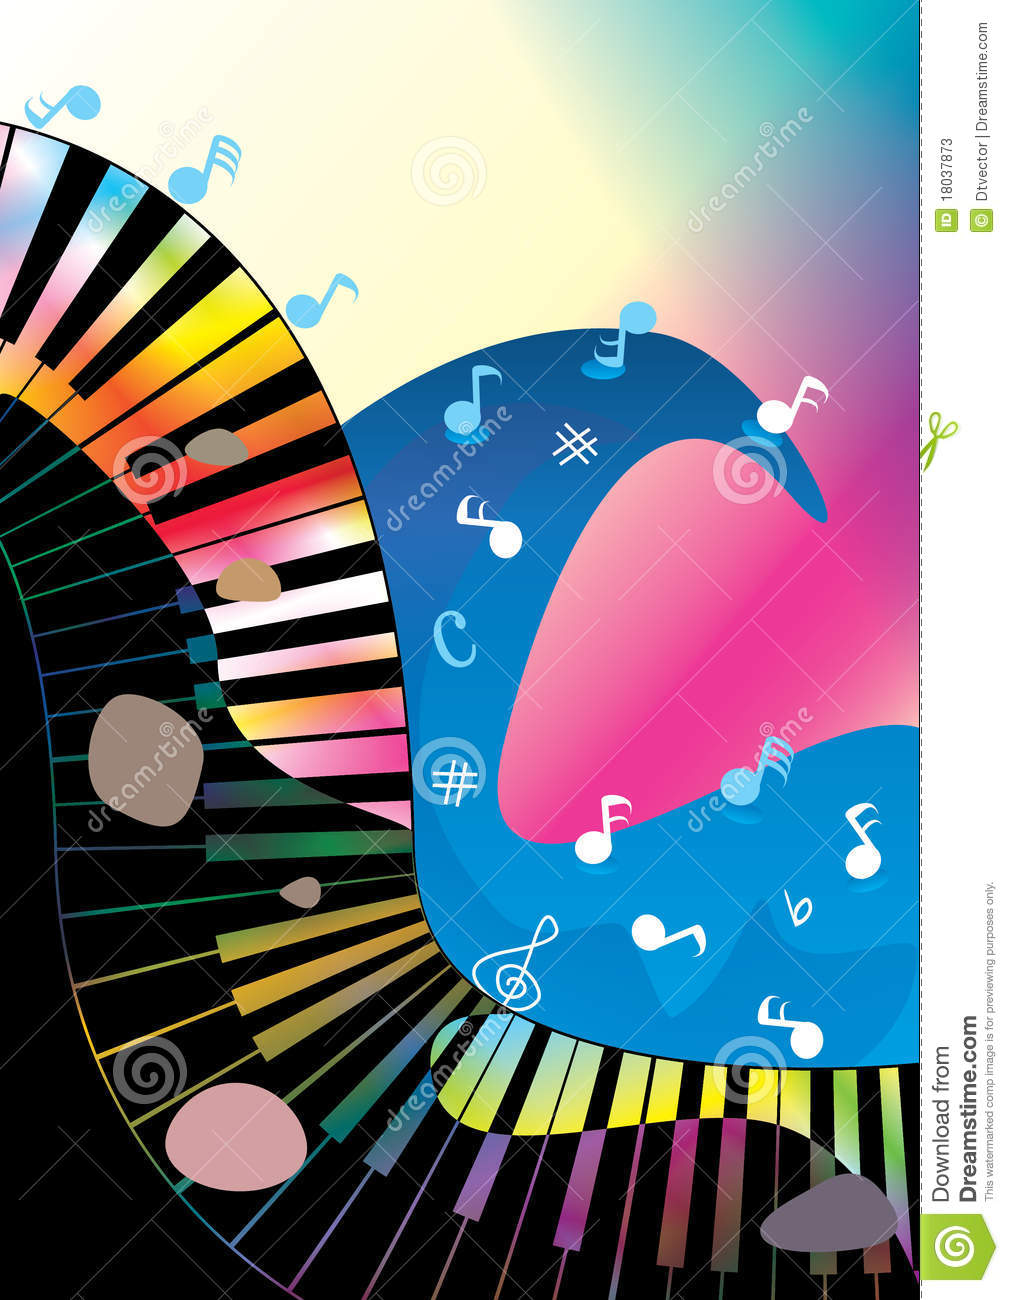 Download Abstract Music Ocean Rock And Roll_eps Stock Vector - Illustration of element, border: 18037873